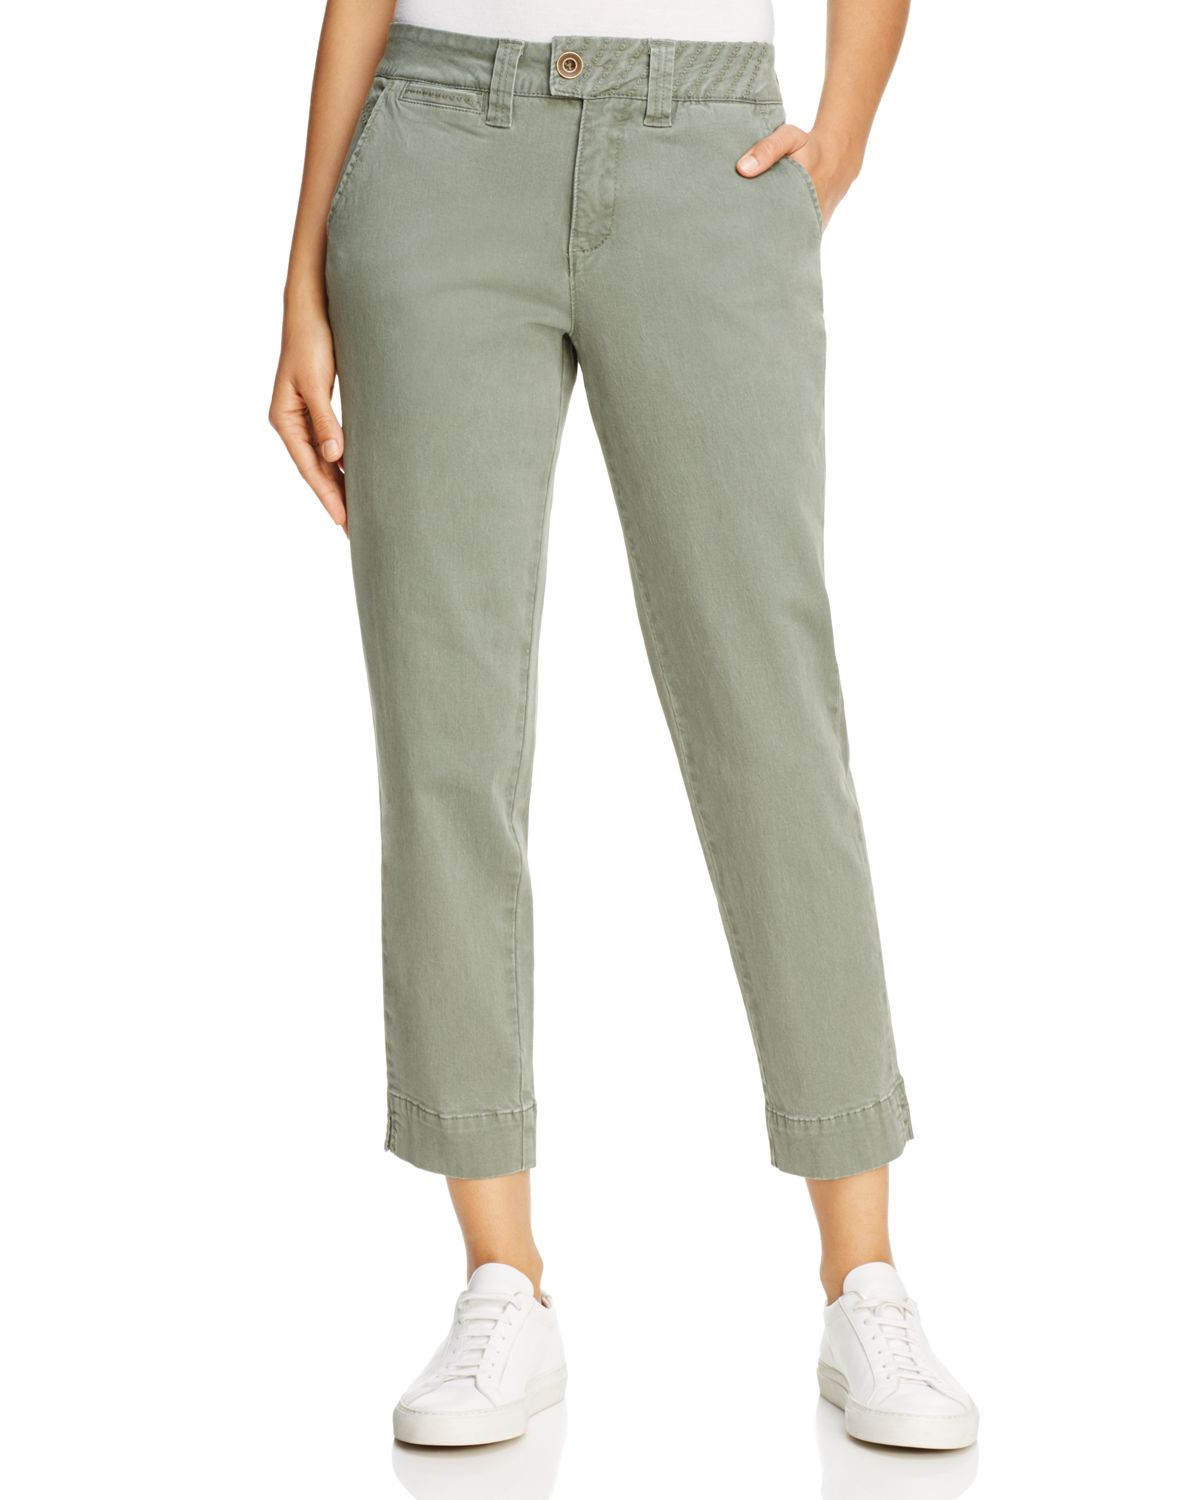 Creston Cropped Ankle Pants by Jag Jeans